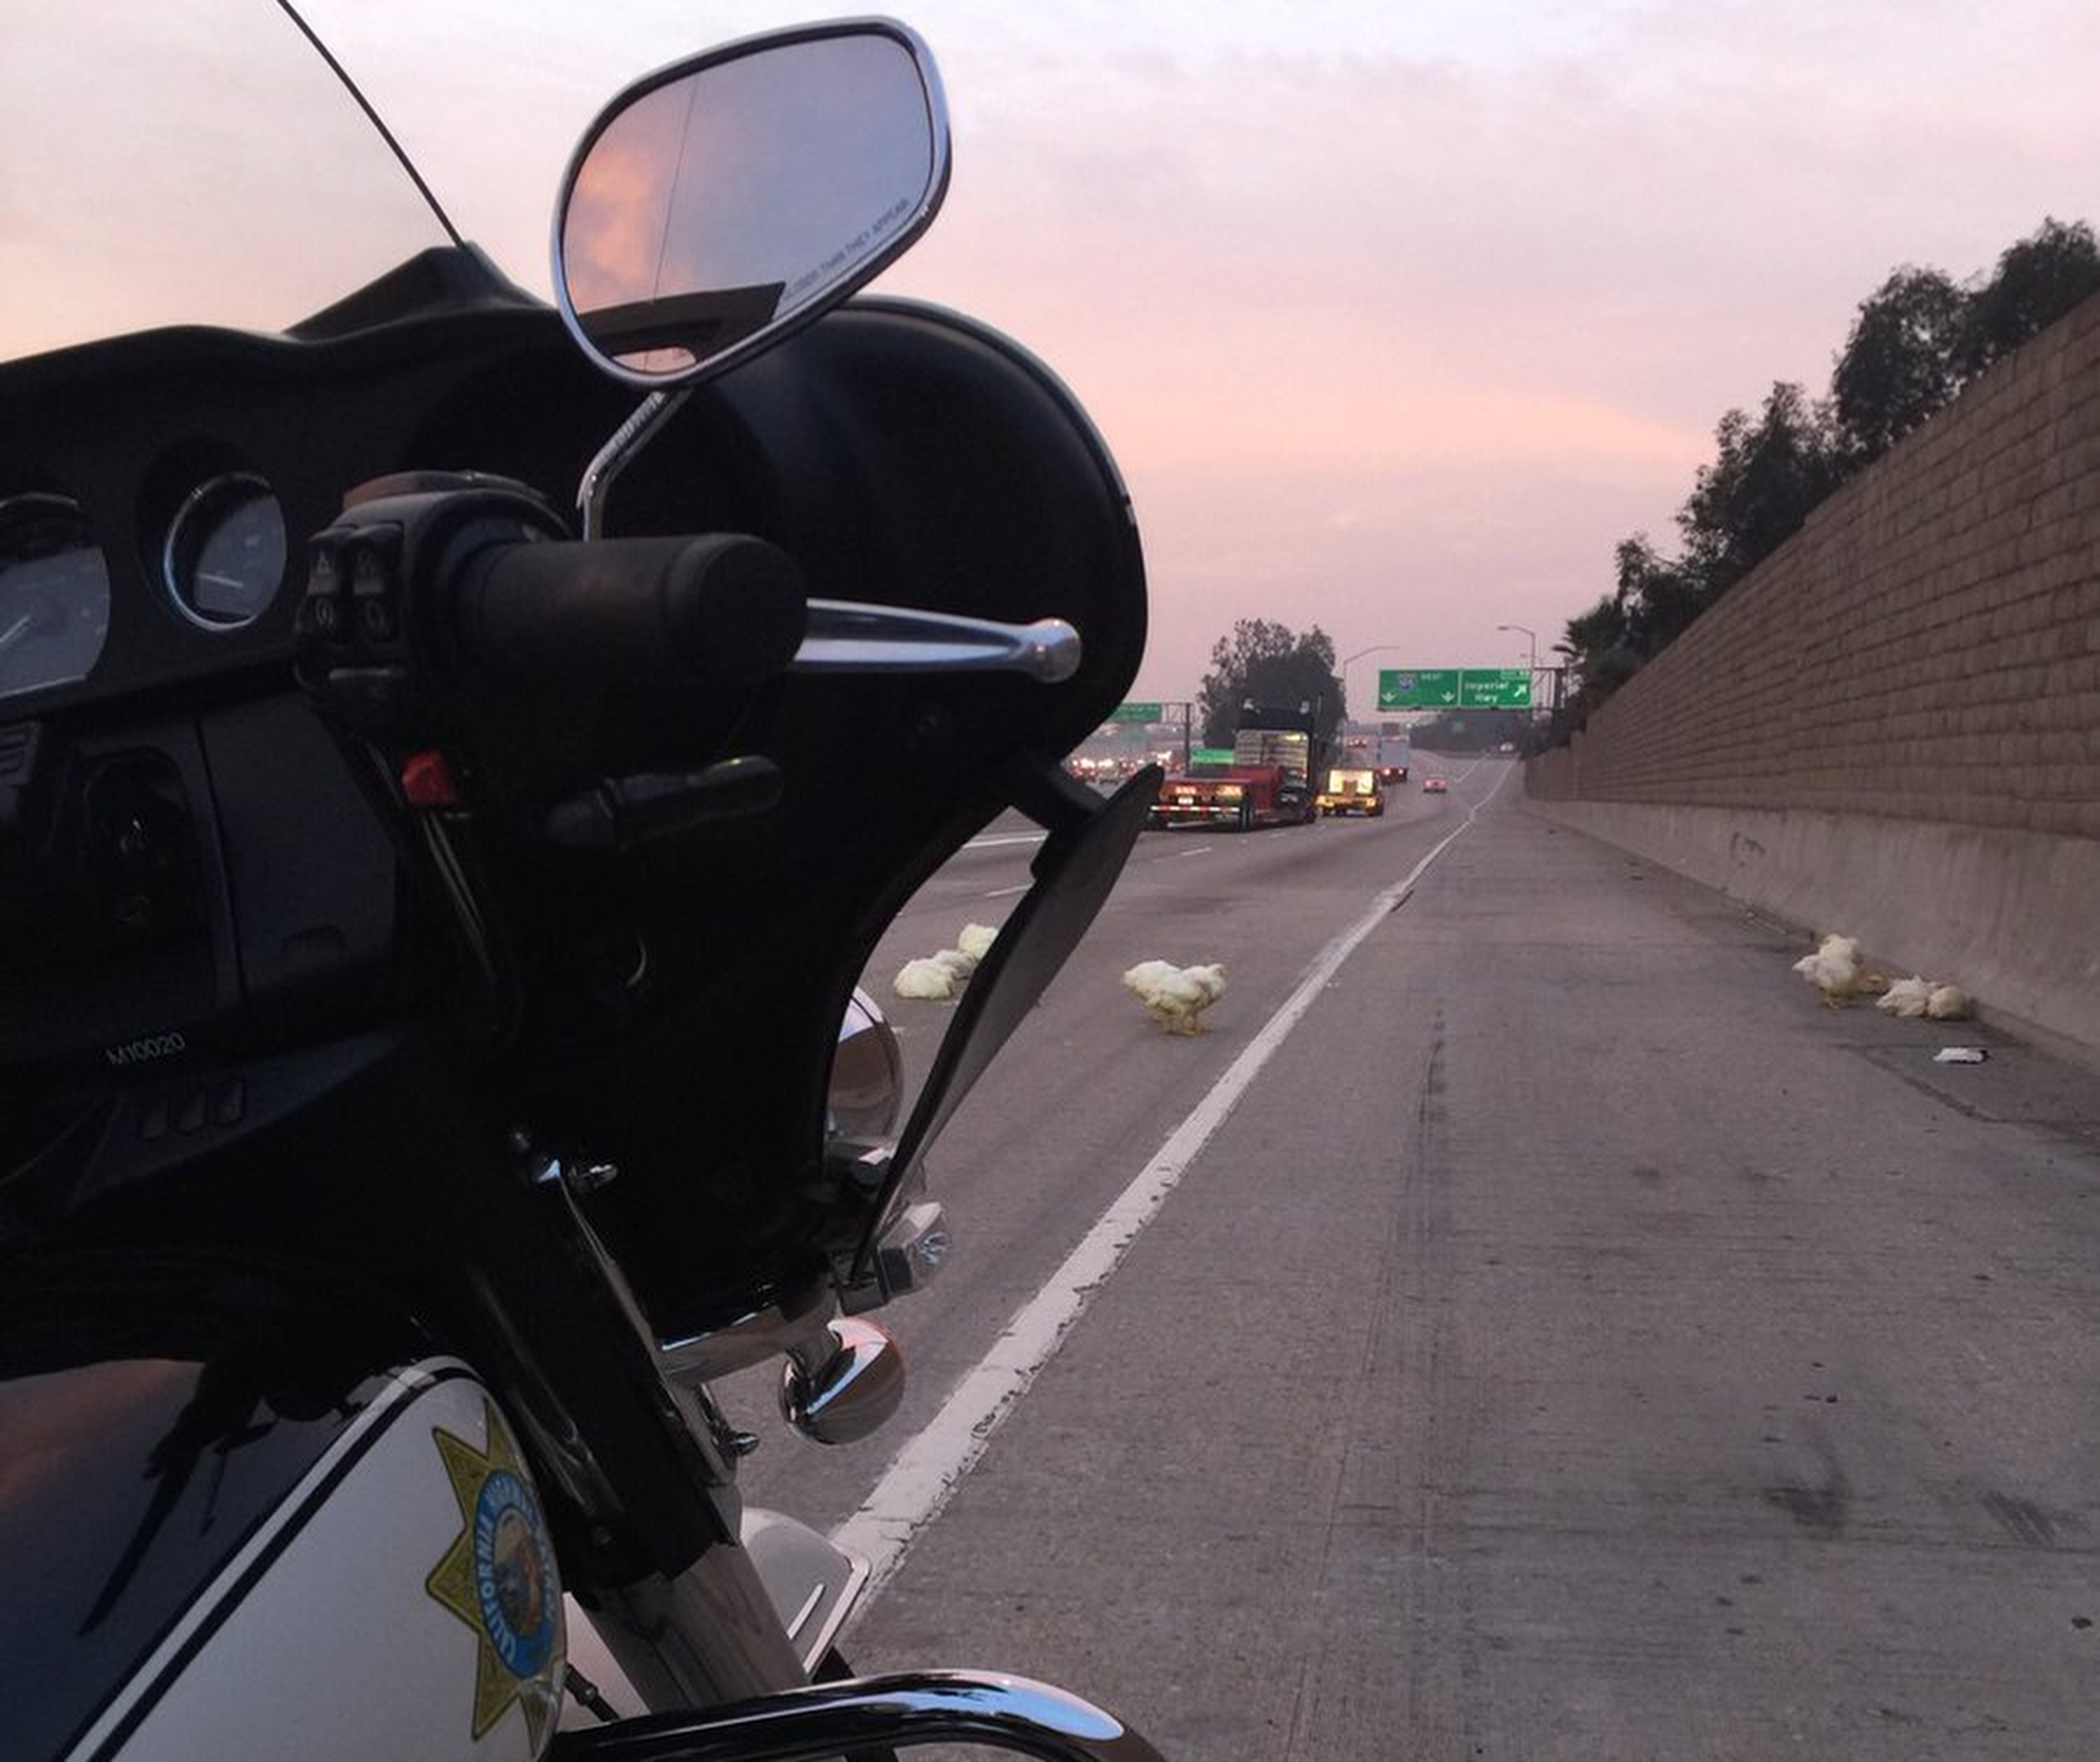 In this photo released by the California Highway Patrol, CHP officers scramble to rescue nearly 20 chickens that ran through highway lanes in Norwalk, Calif., Tuesday, Jan. 2, 2018. The CHP says the birds blocked a portion of Interstate 605 Tuesday morning after their cage fell from the back of a truck. The agency tweeted photos and video of the chickens in lanes and a motorcycle officer collecting them. Officers managed to rescue 17 birds. Two died. (CHP Officer C.Lillie/California Highway Patrol via AP)